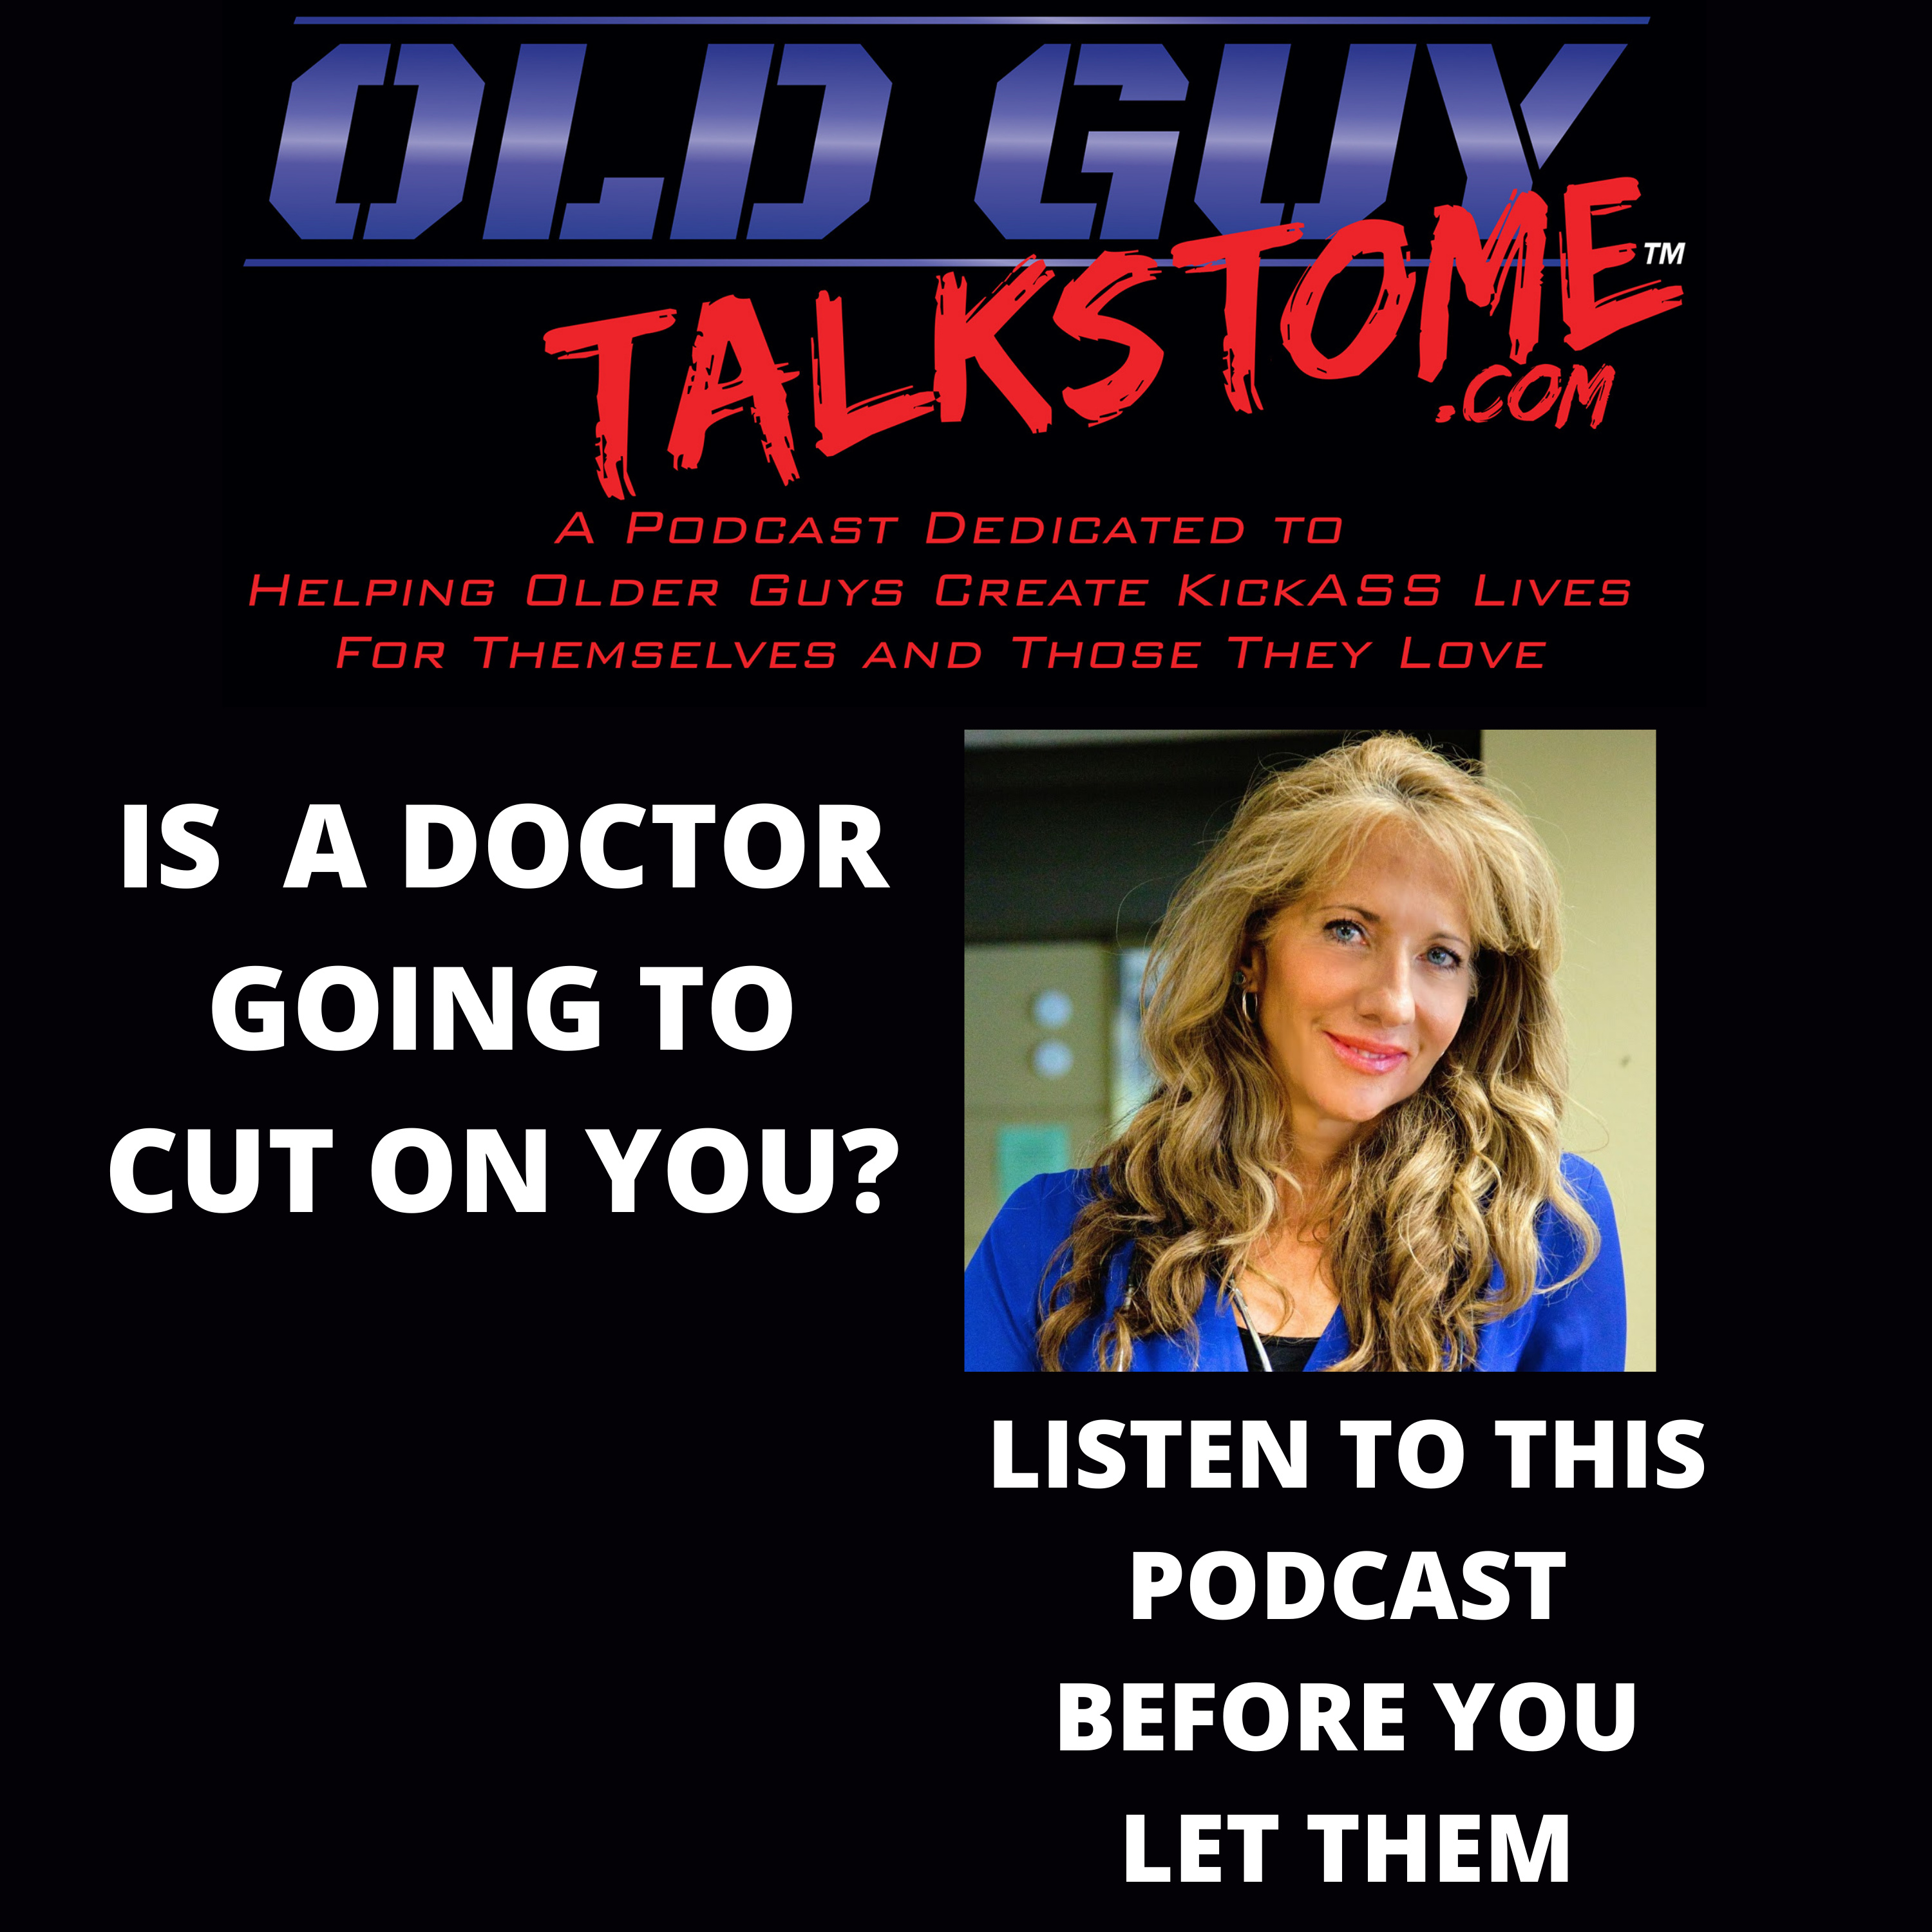 OldGuyTalksToMe - IS A DOCTOR GOING TO CUT ON YOU? LISTEN TO THIS PODCAST BEFORE YOU LET THEM